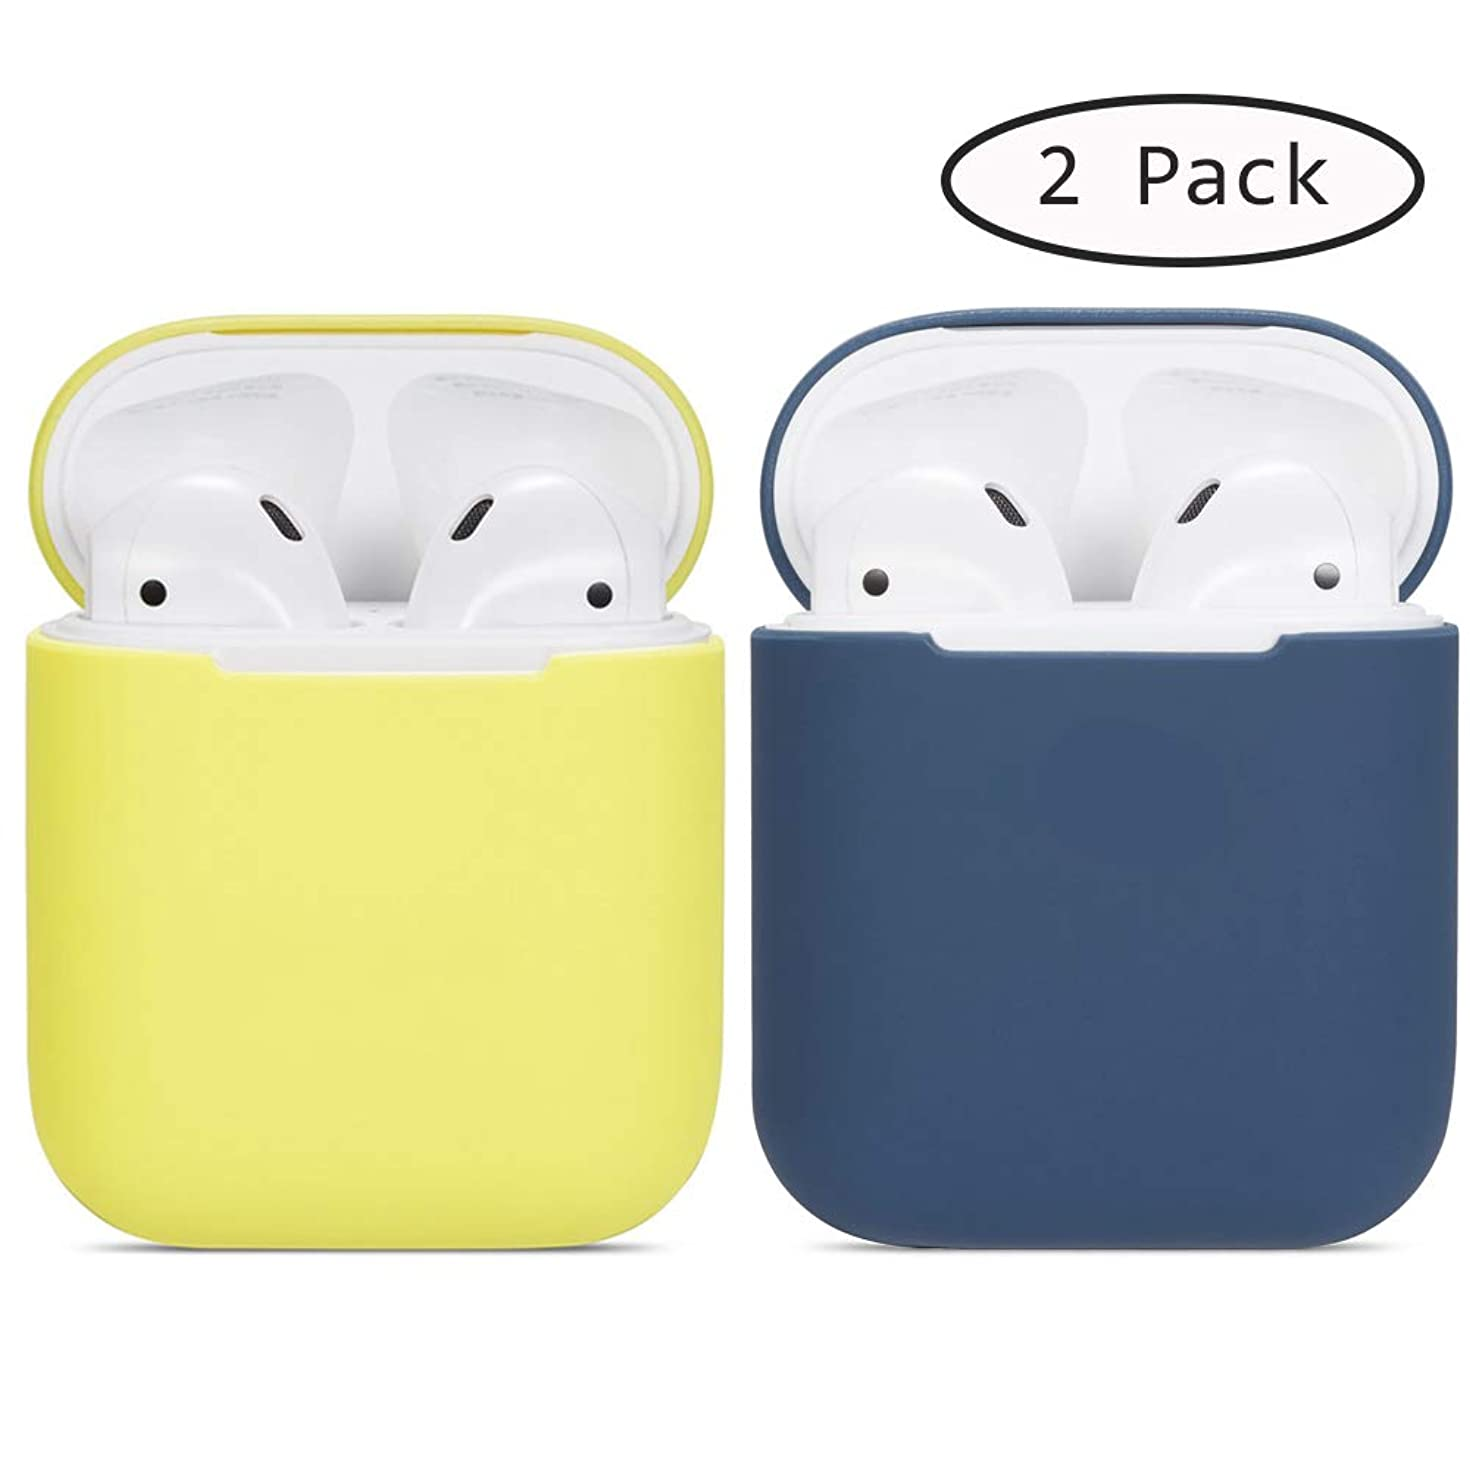 Compatible Airpods Case, 2 Pack Protective Ultra-Thin Soft Silicone Shockproof Non-Slip Protection Accessories Cover Case for Apple Airpods 2 & 1 Charging Case - Yellow+Blue